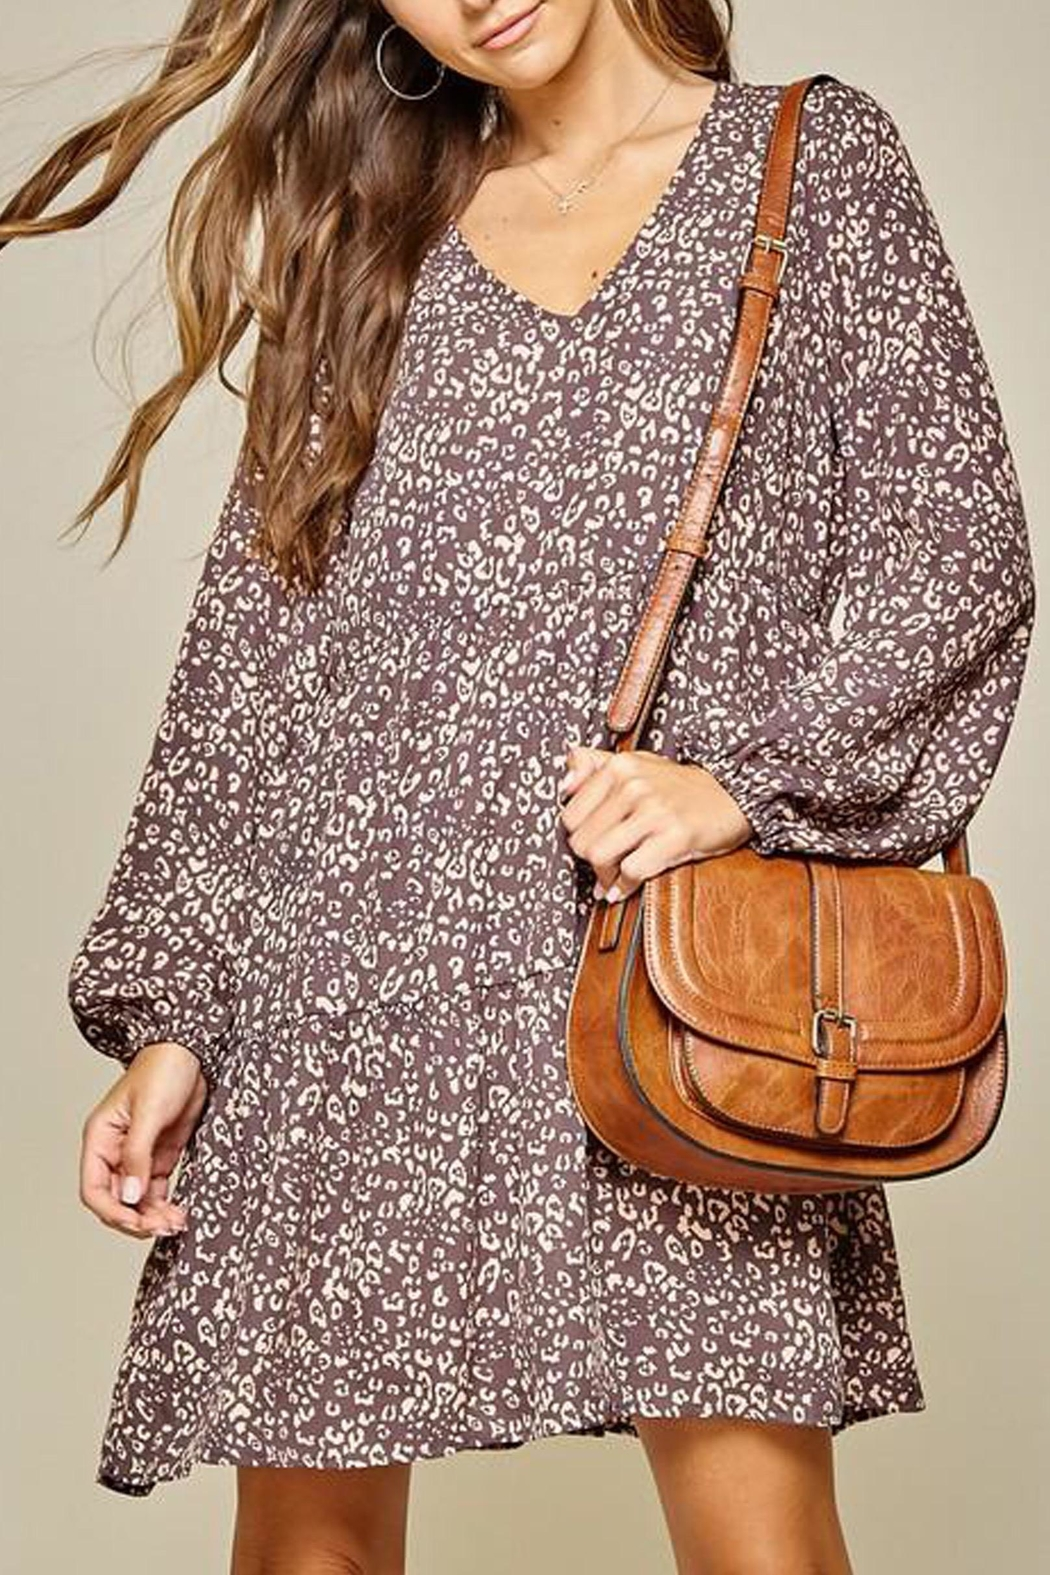 Andree by Unit Leopard Tiered Shift-Dress - Main Image